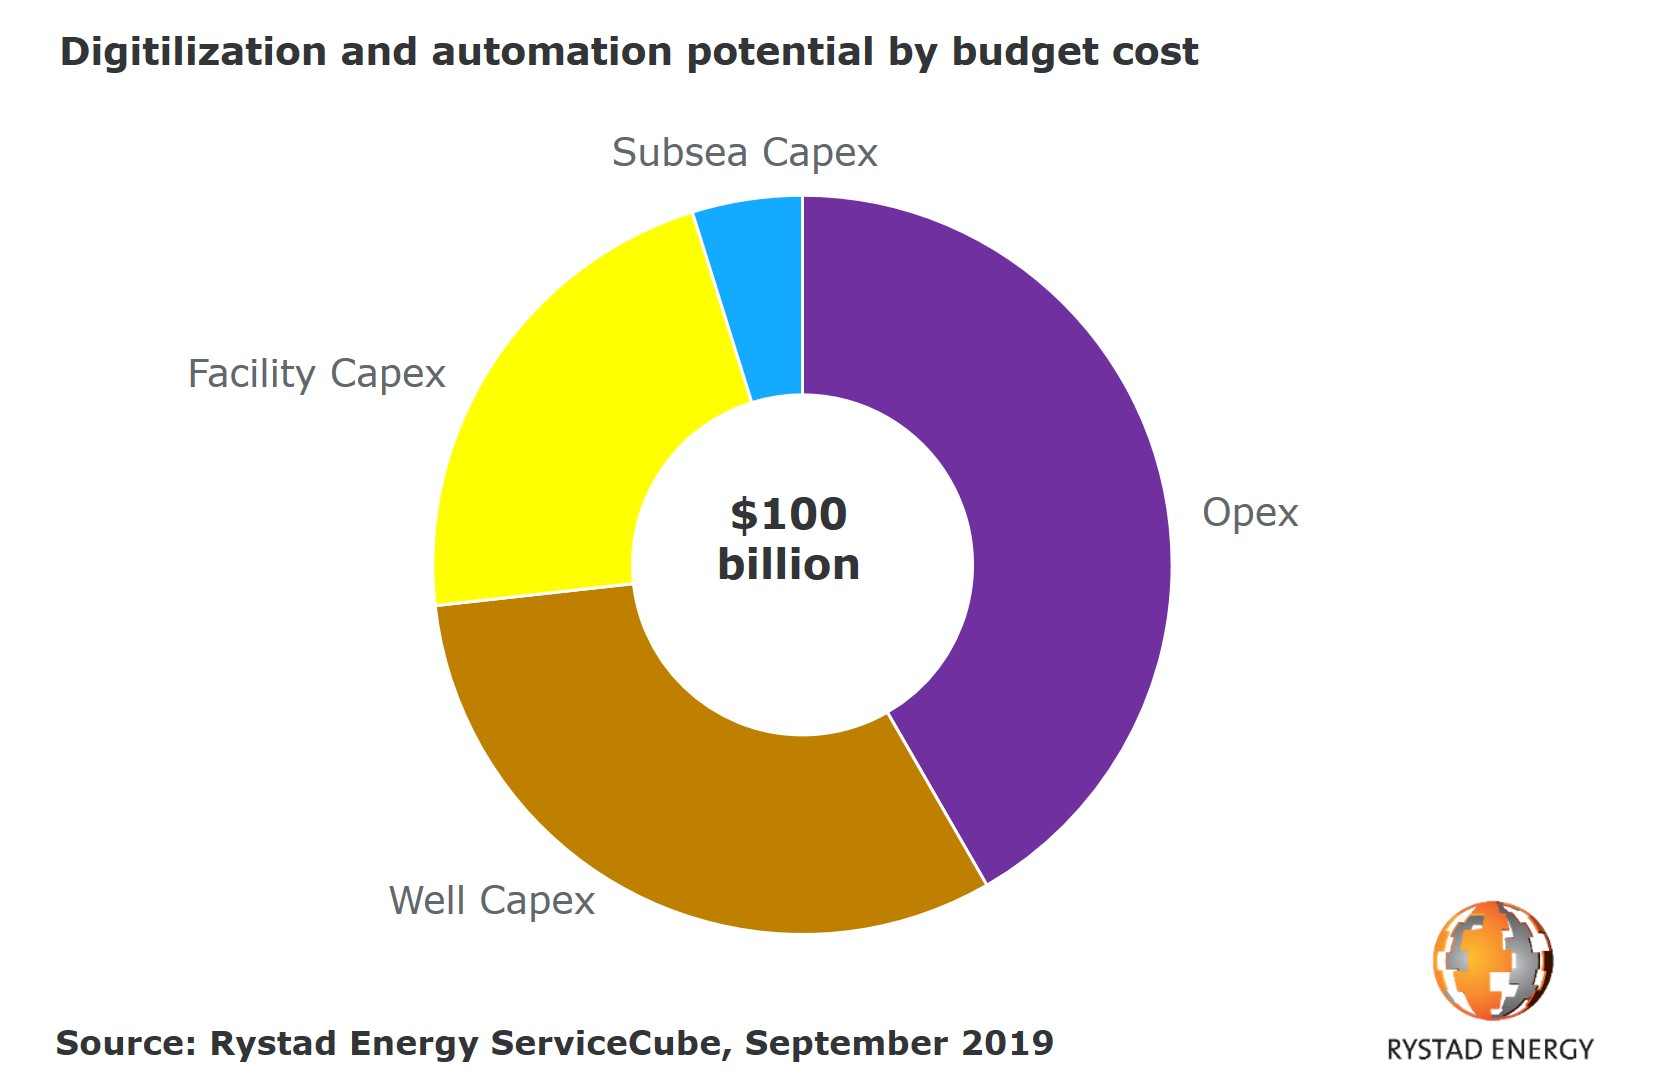 20191008_PR Chart 1 digitalization potential by budget cost.jpg